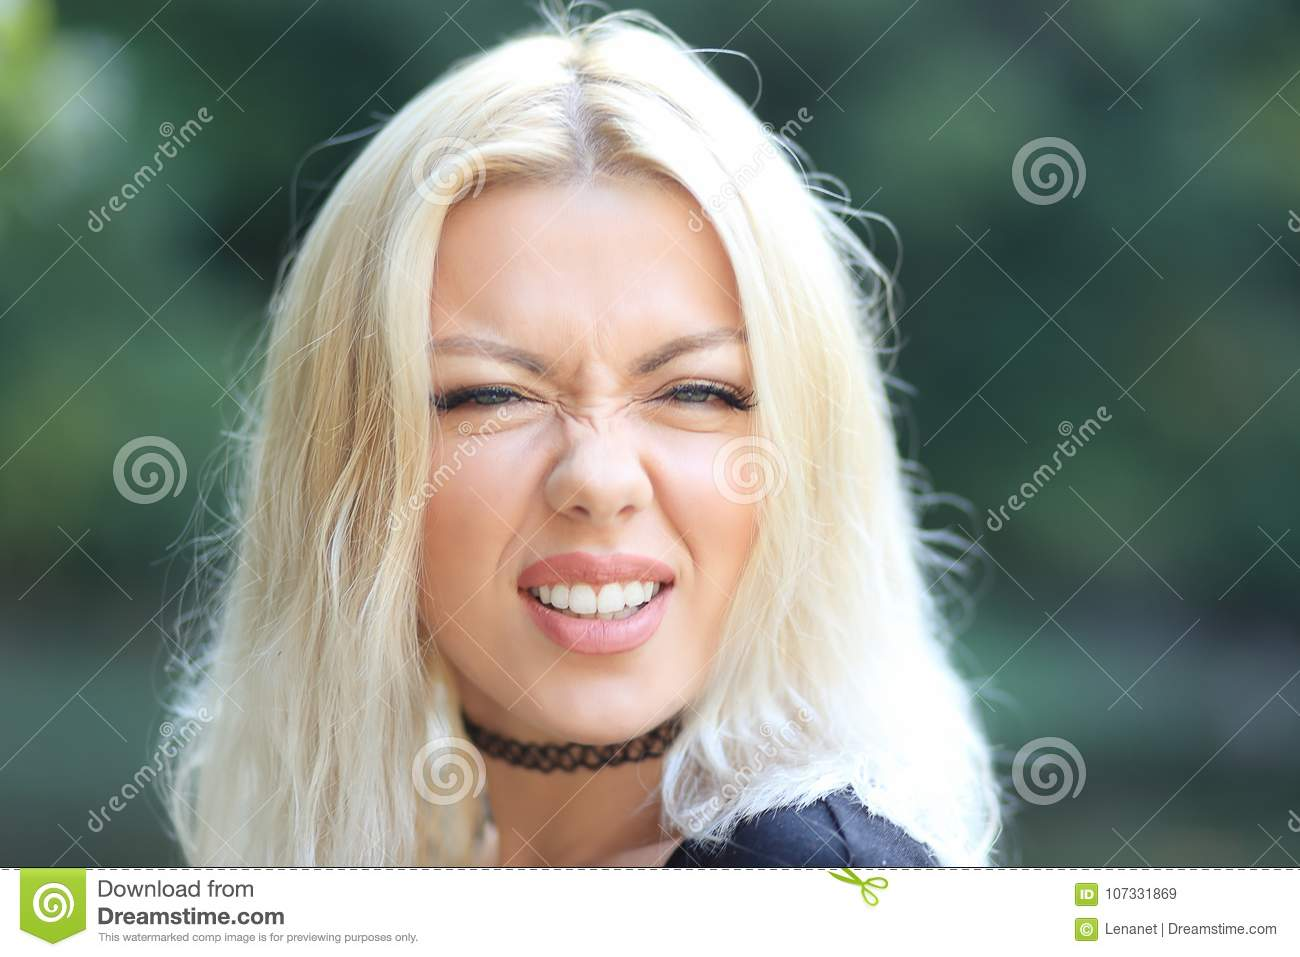 Blond woman making face